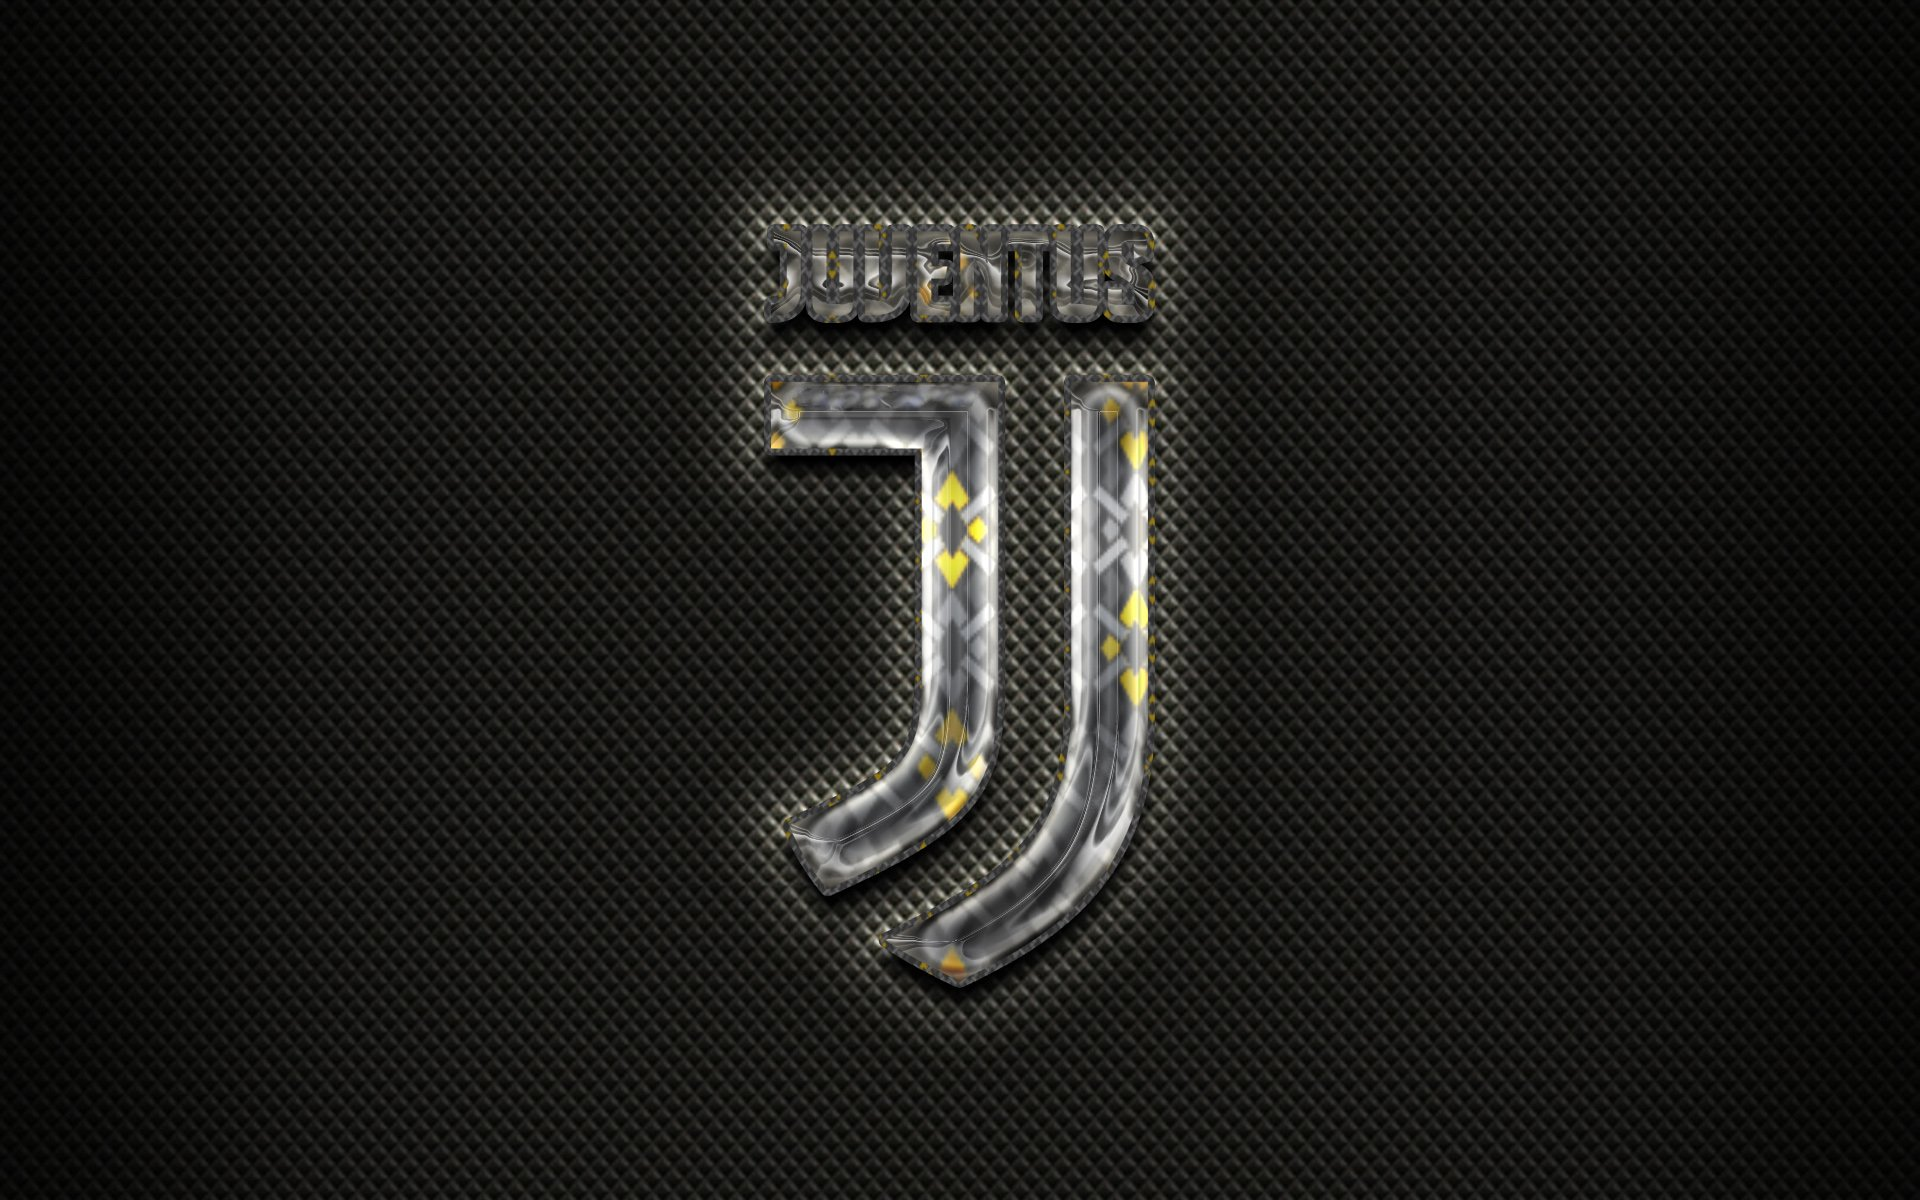 Juventus F C Hd Wallpaper Background Image 1920x1200 Id 977173 Wallpaper Abyss